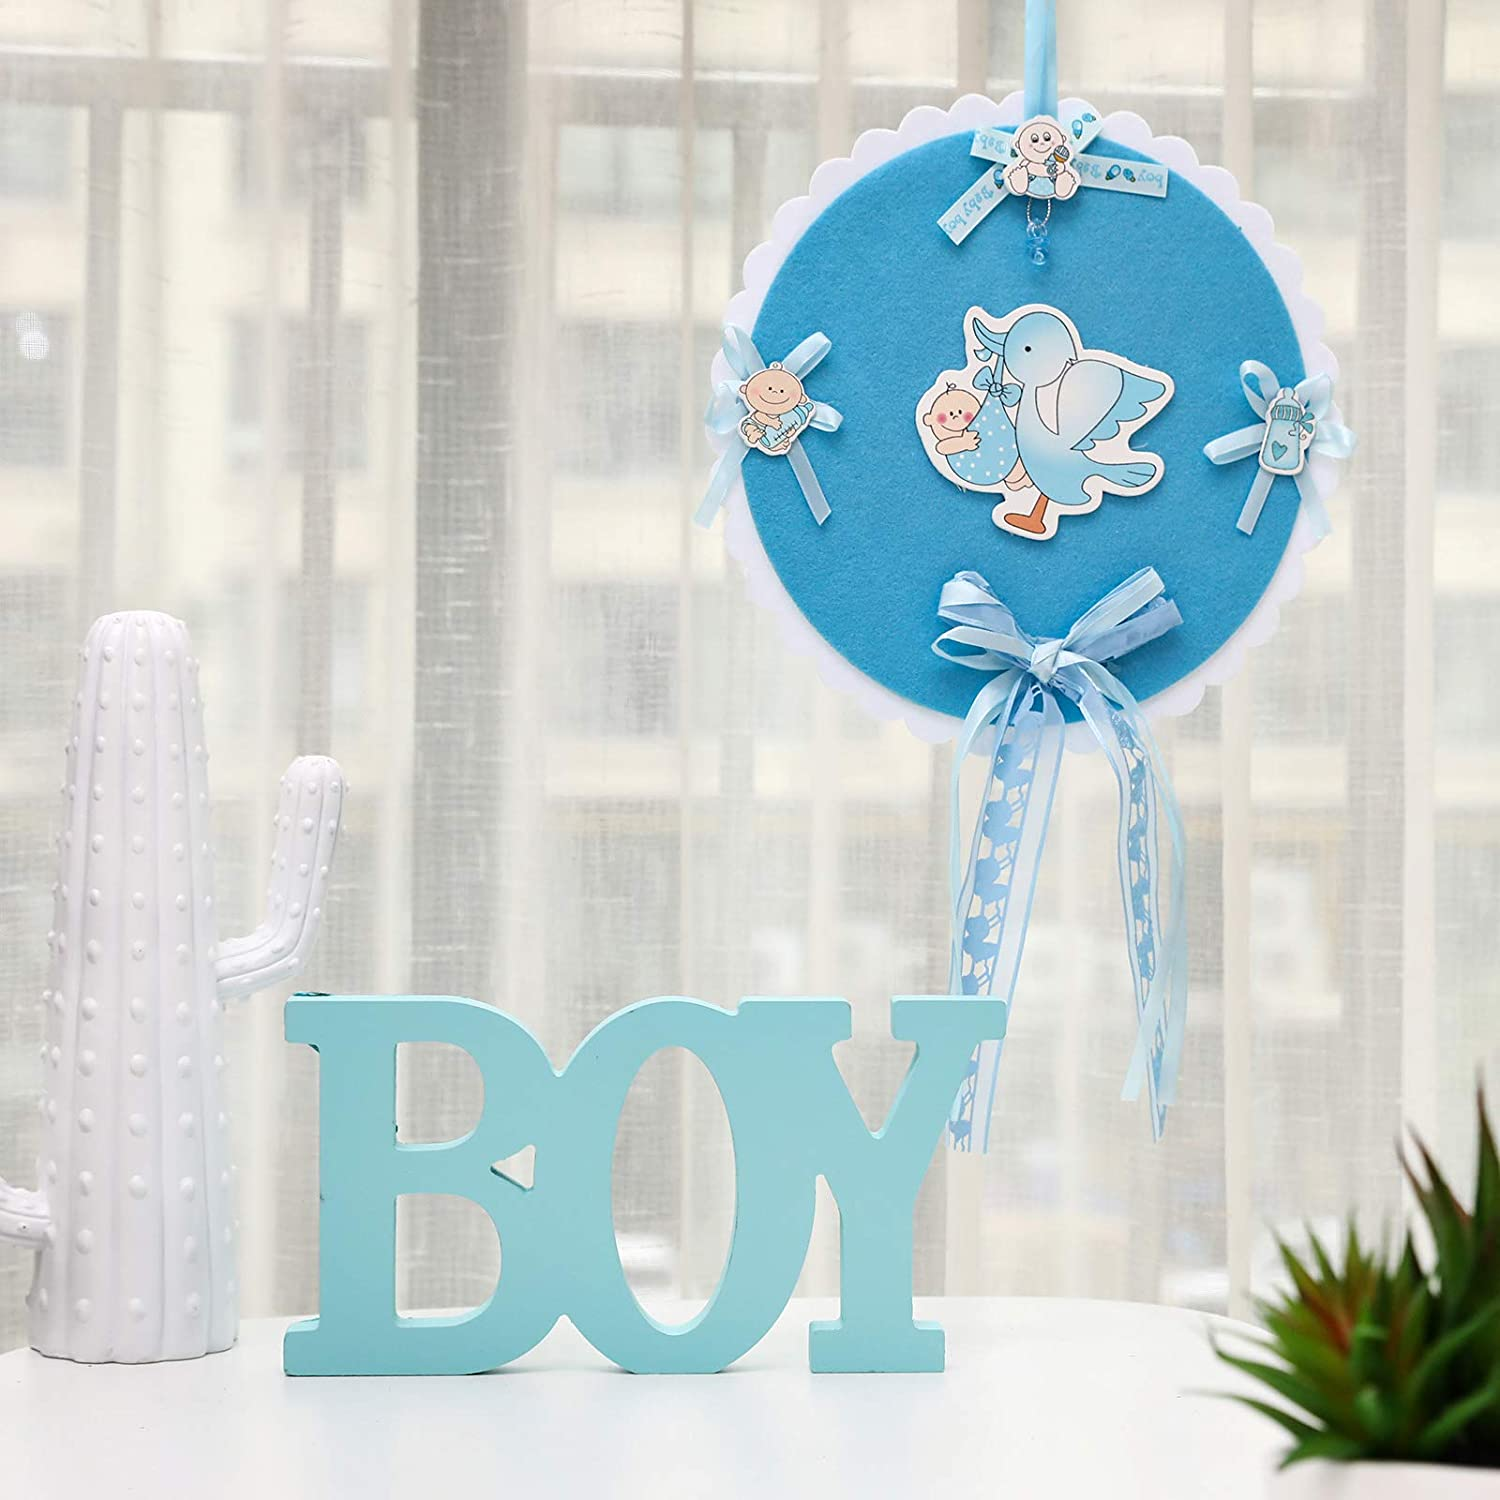 PARTYGOGO Blue Wooden BOY Sign for Baby Shower, Wooden Letter Table Sign BOY for Baby Shower Party Decoration Supplies (Blue BOY)